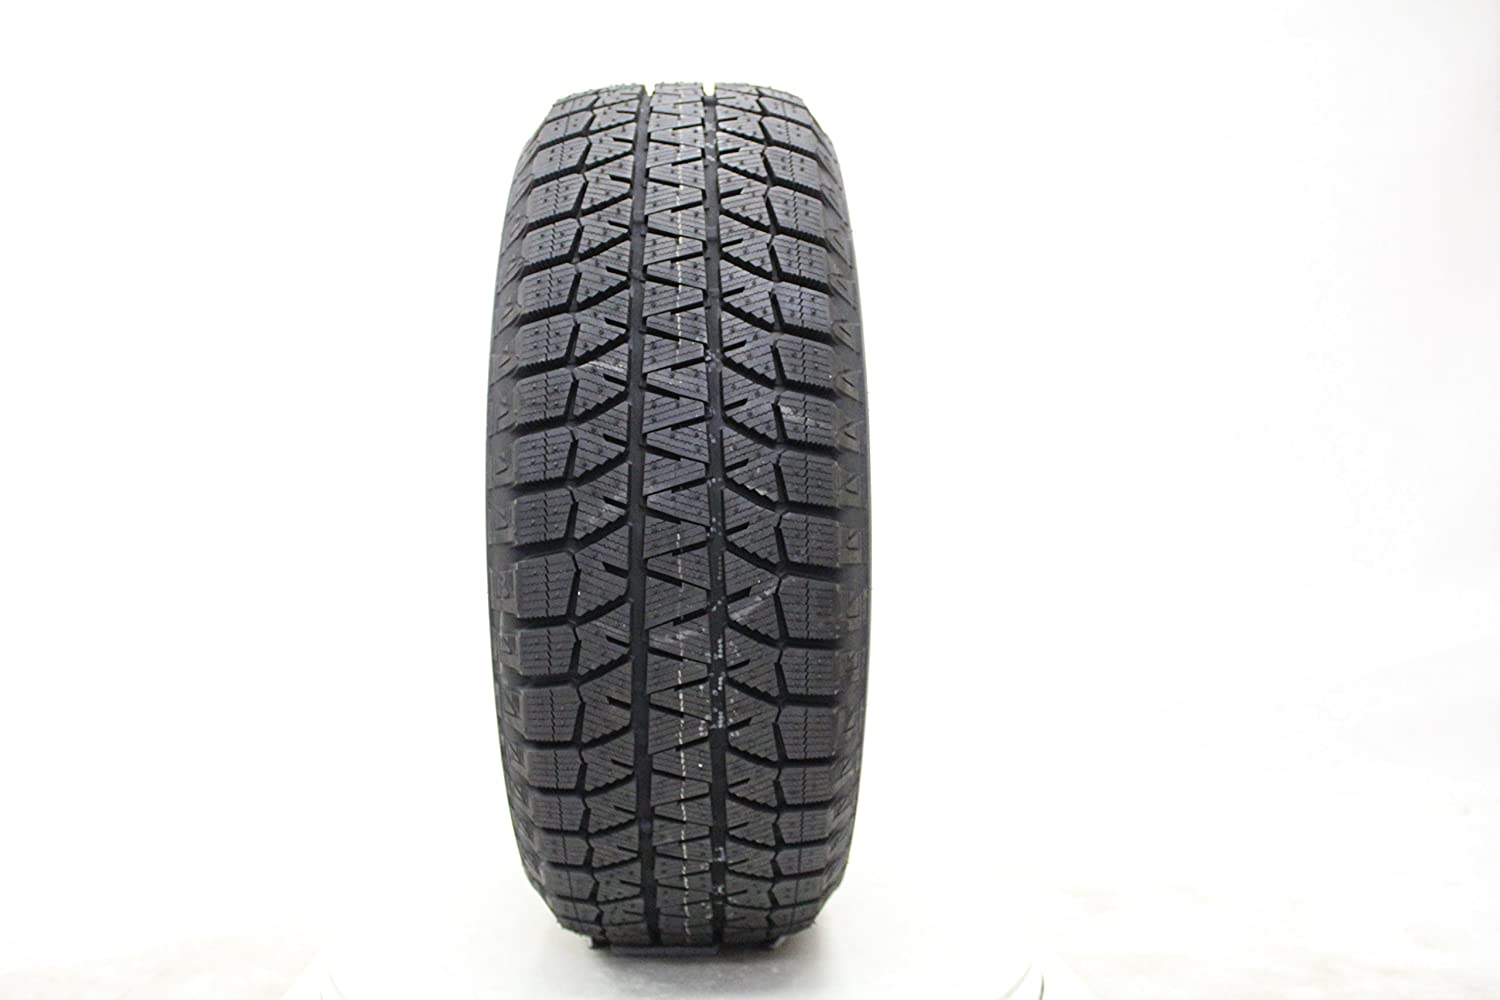 Bridgestone Blizzak WS80 Performance Winter Radial Tire - 235/50R19 99H 001206